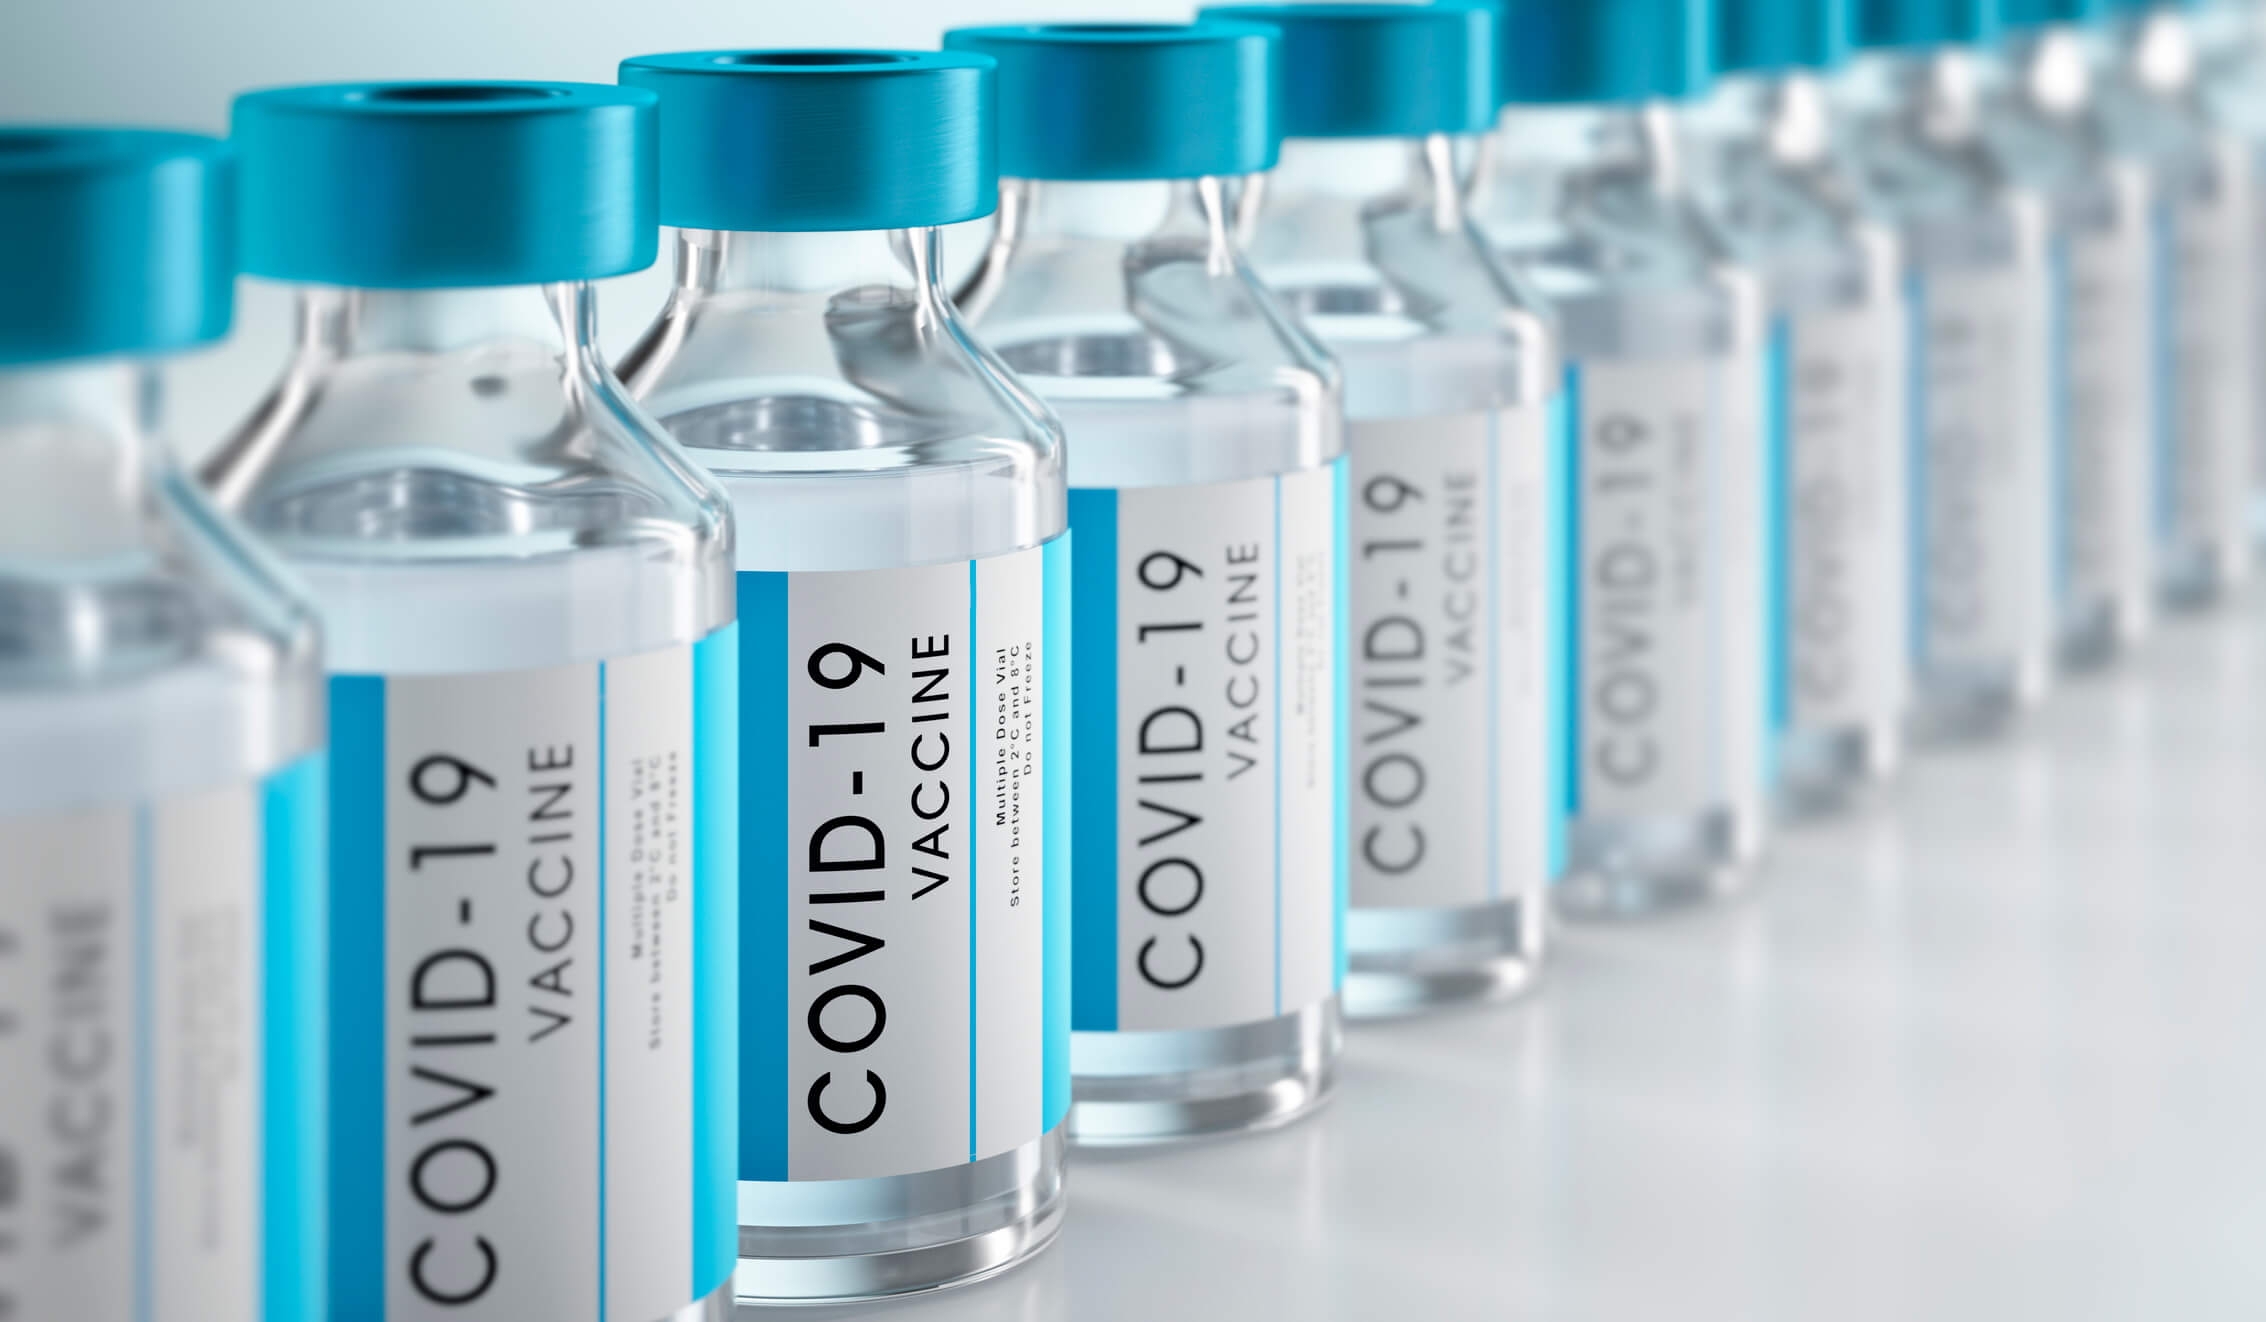 The Covid-19 Vaccine Will Do More Than Simply Increasing Confidence, As Per The Surgeon General